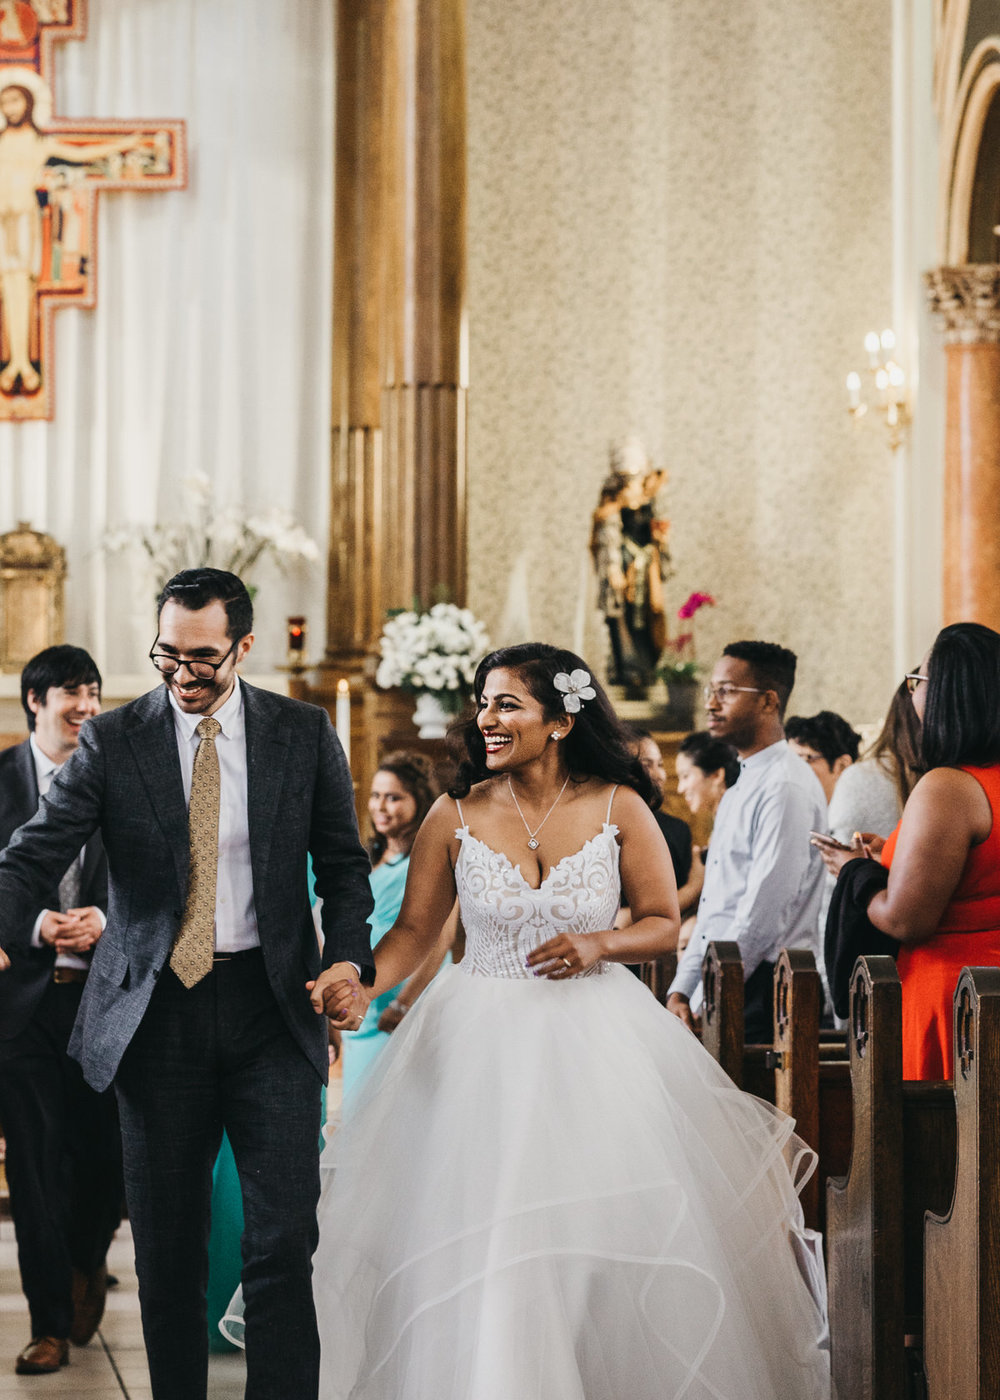 Oakland Wedding of Bets + Adam by Bay Area photographer Jaclyn L